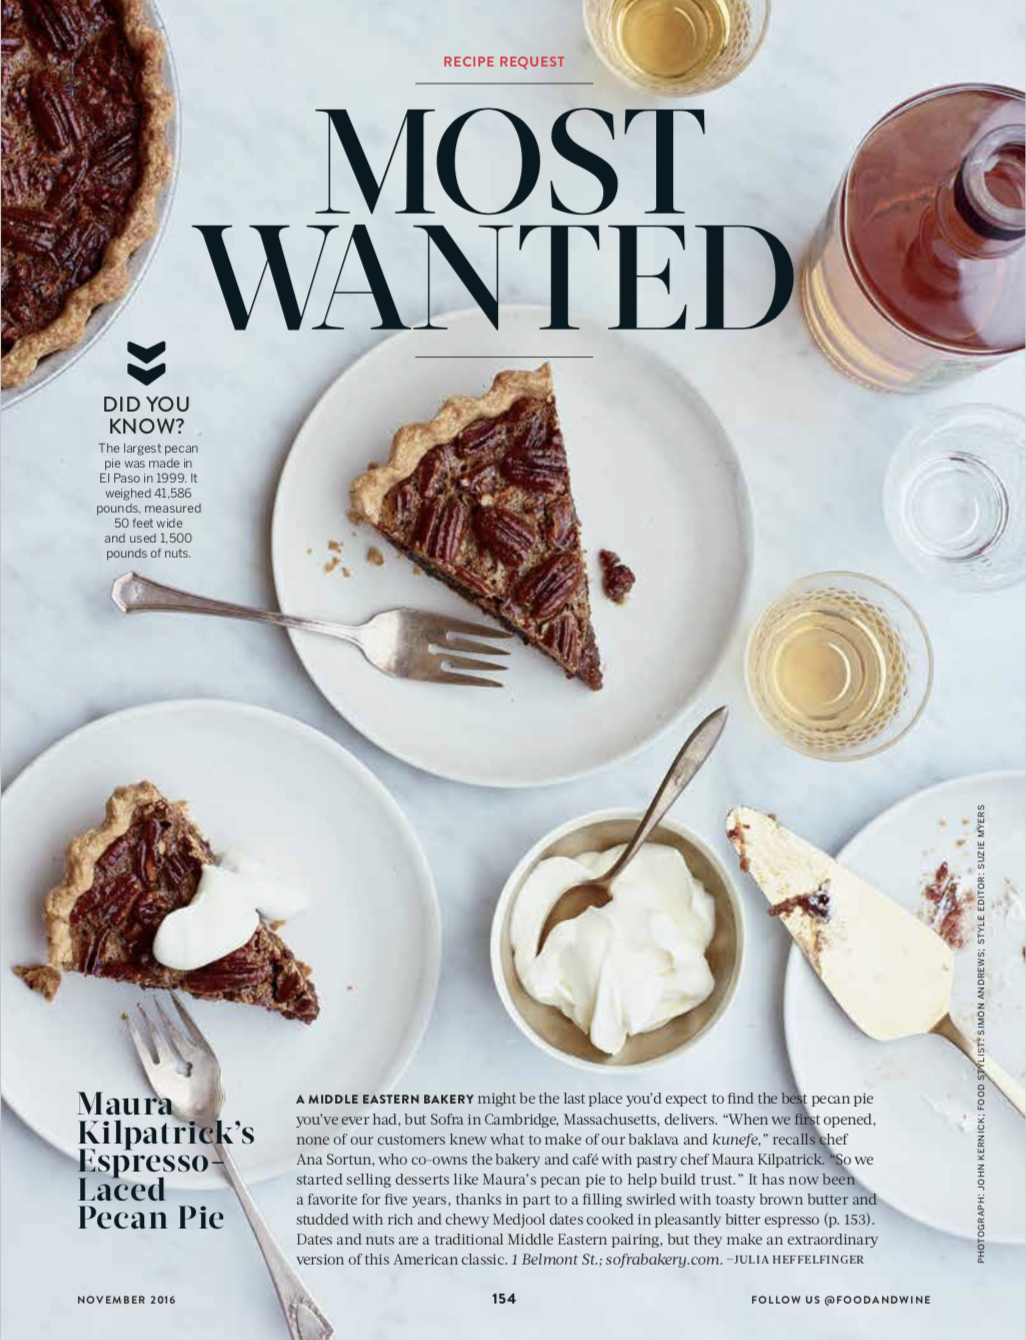 FOOD & WINE MAGAZINE  Most Wanted: Pecan Pie, November 2016